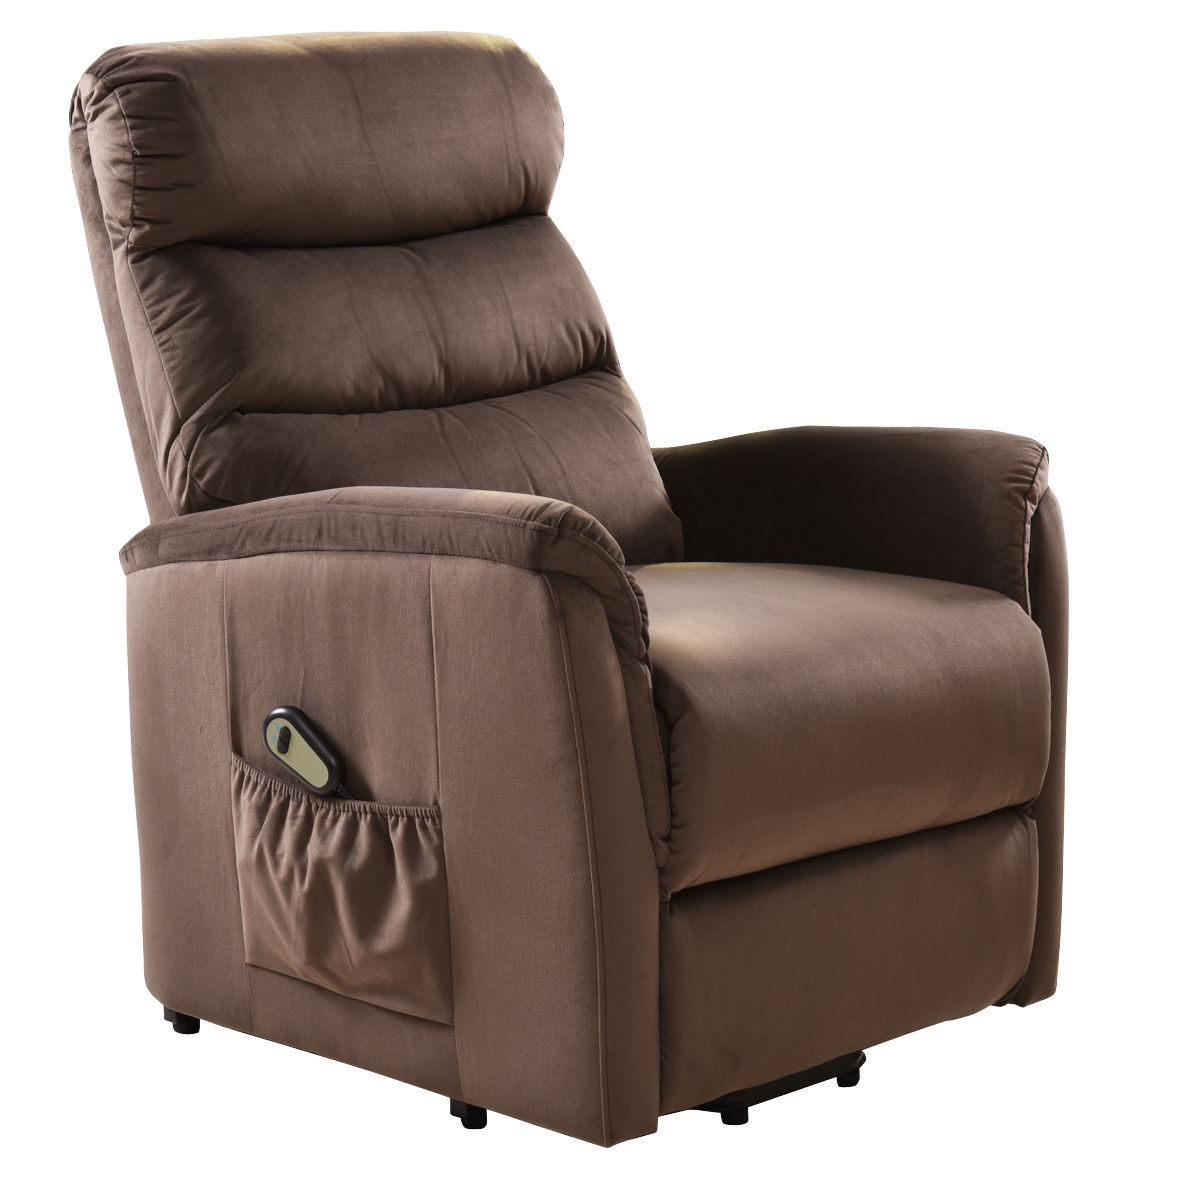 Costway Electric Lift Chair Recliner Reclining Chair Remote Living Room Furniture New by Costway